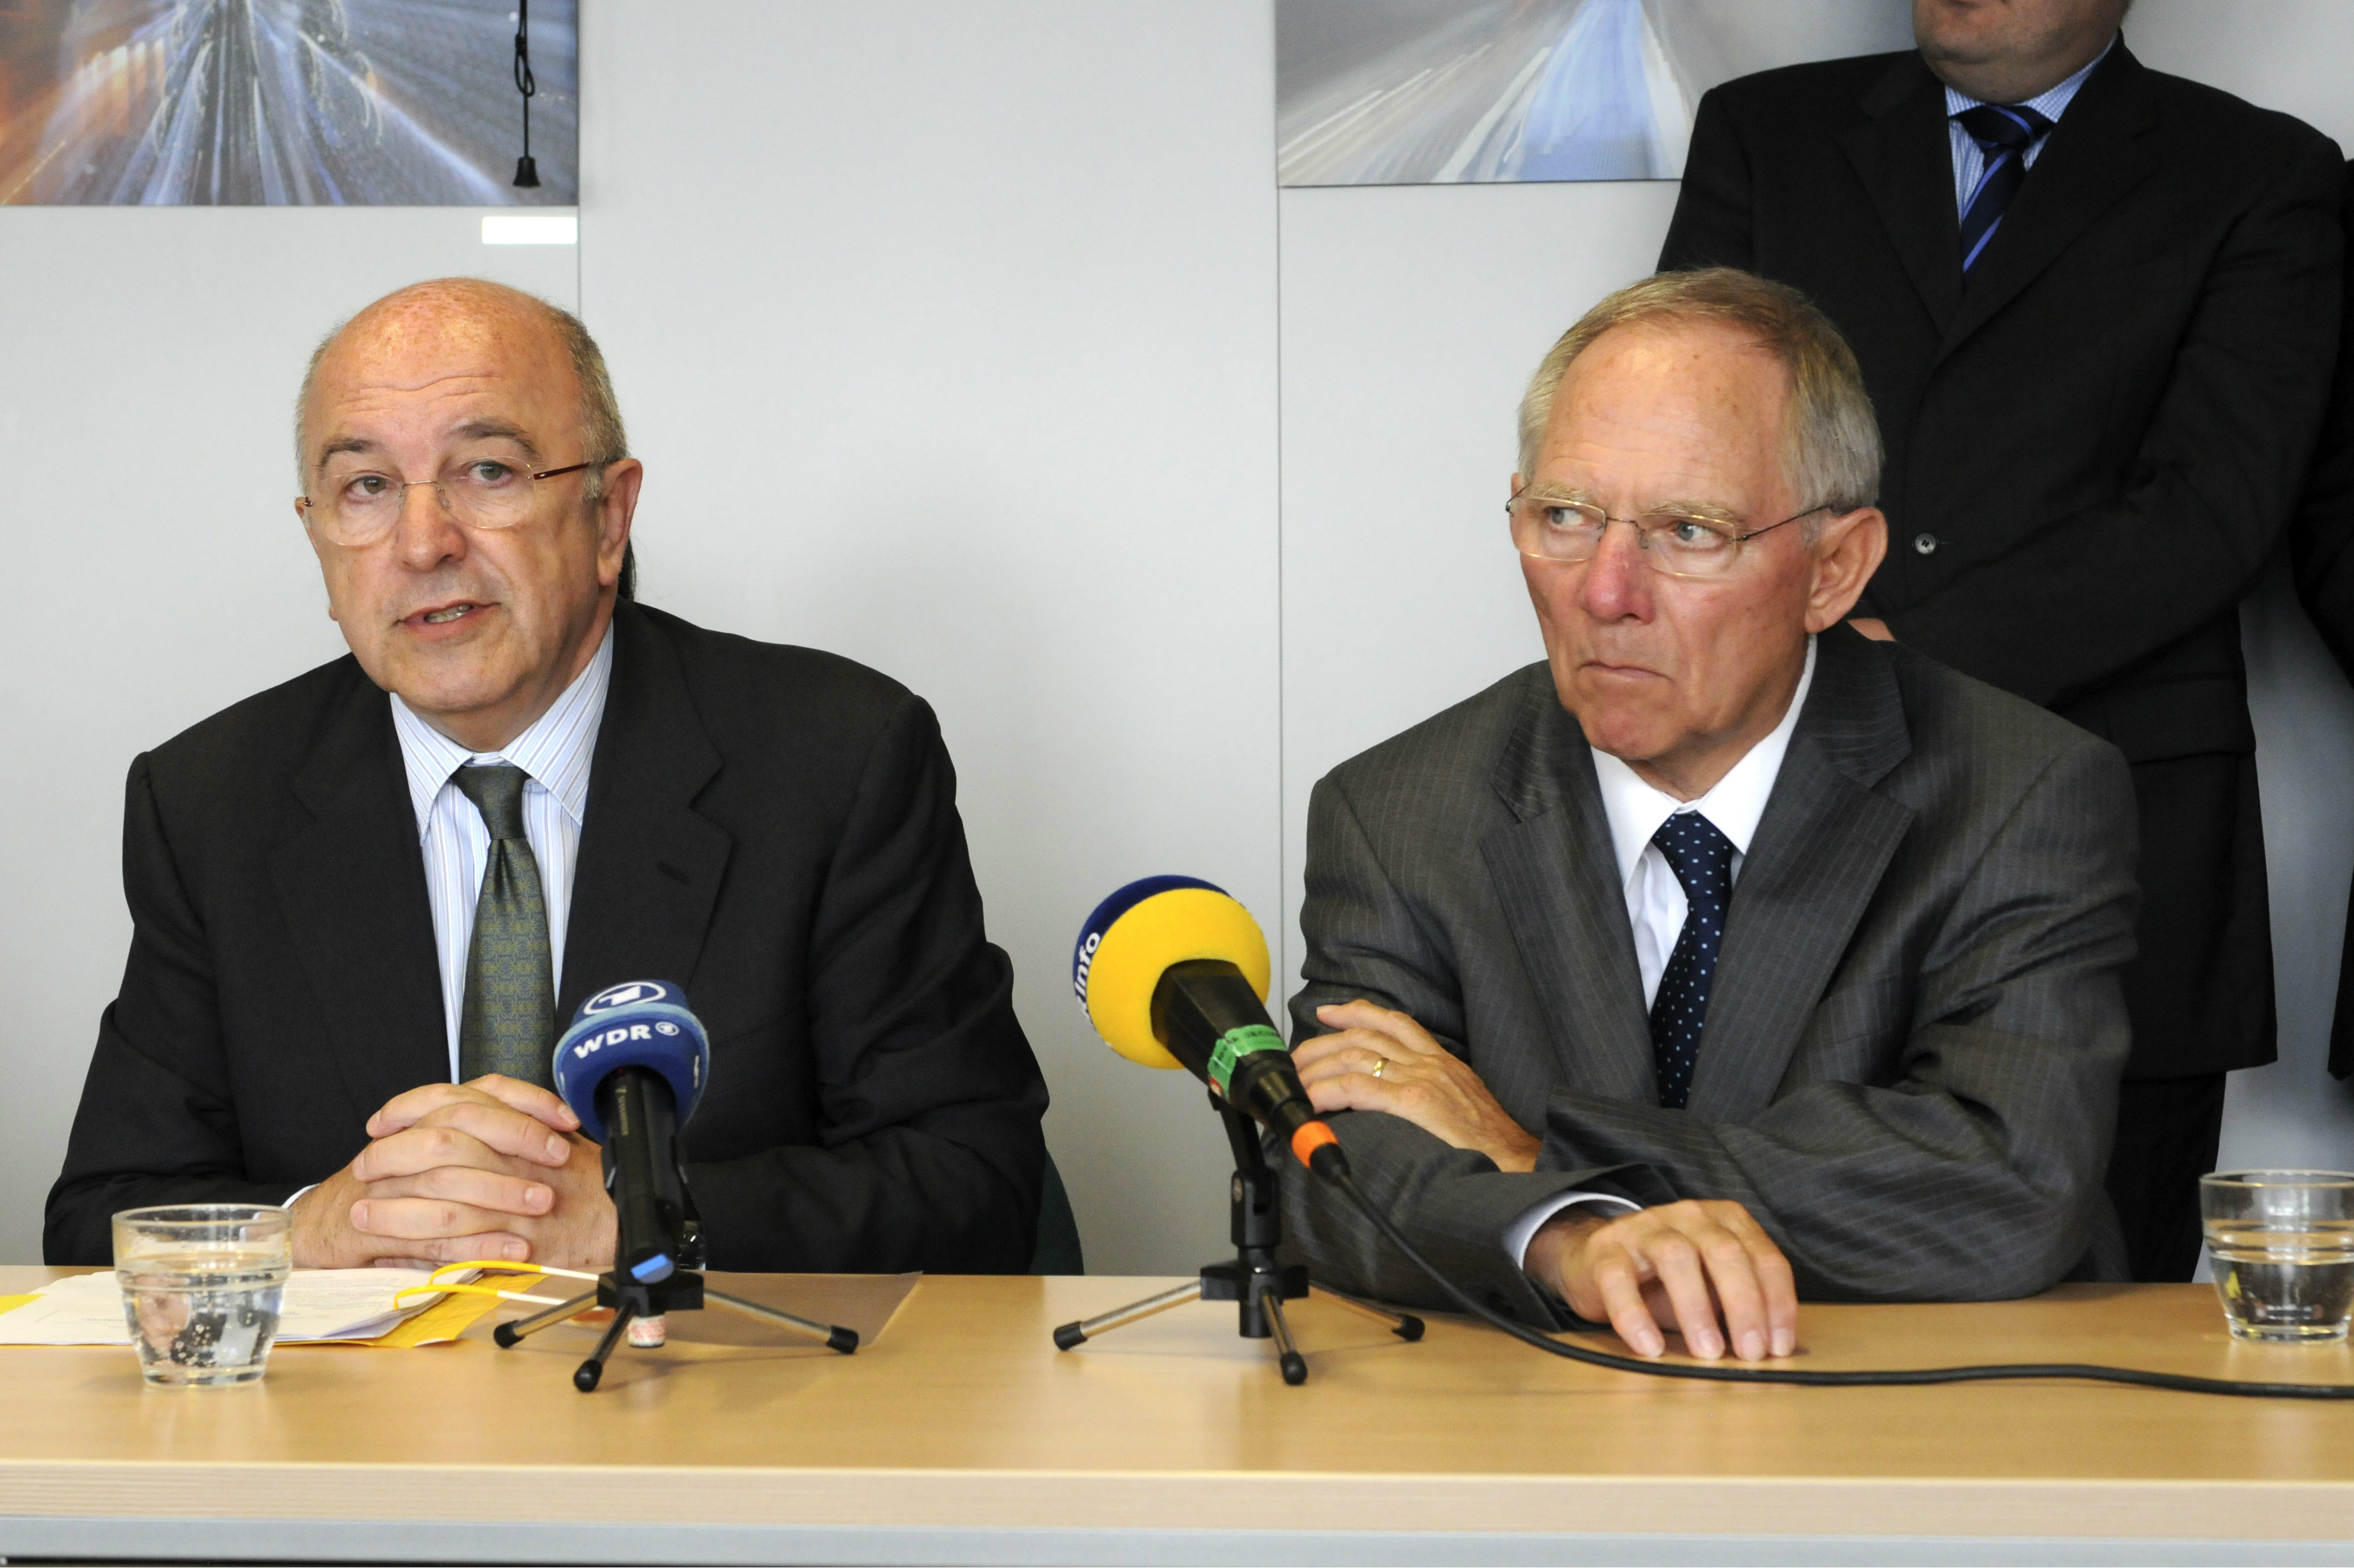 German Finance Minister Wolfgang Schäuble (right) meets with EU Competition Commissioner Joaquín Almunia. Brussels, 2011 [EC]